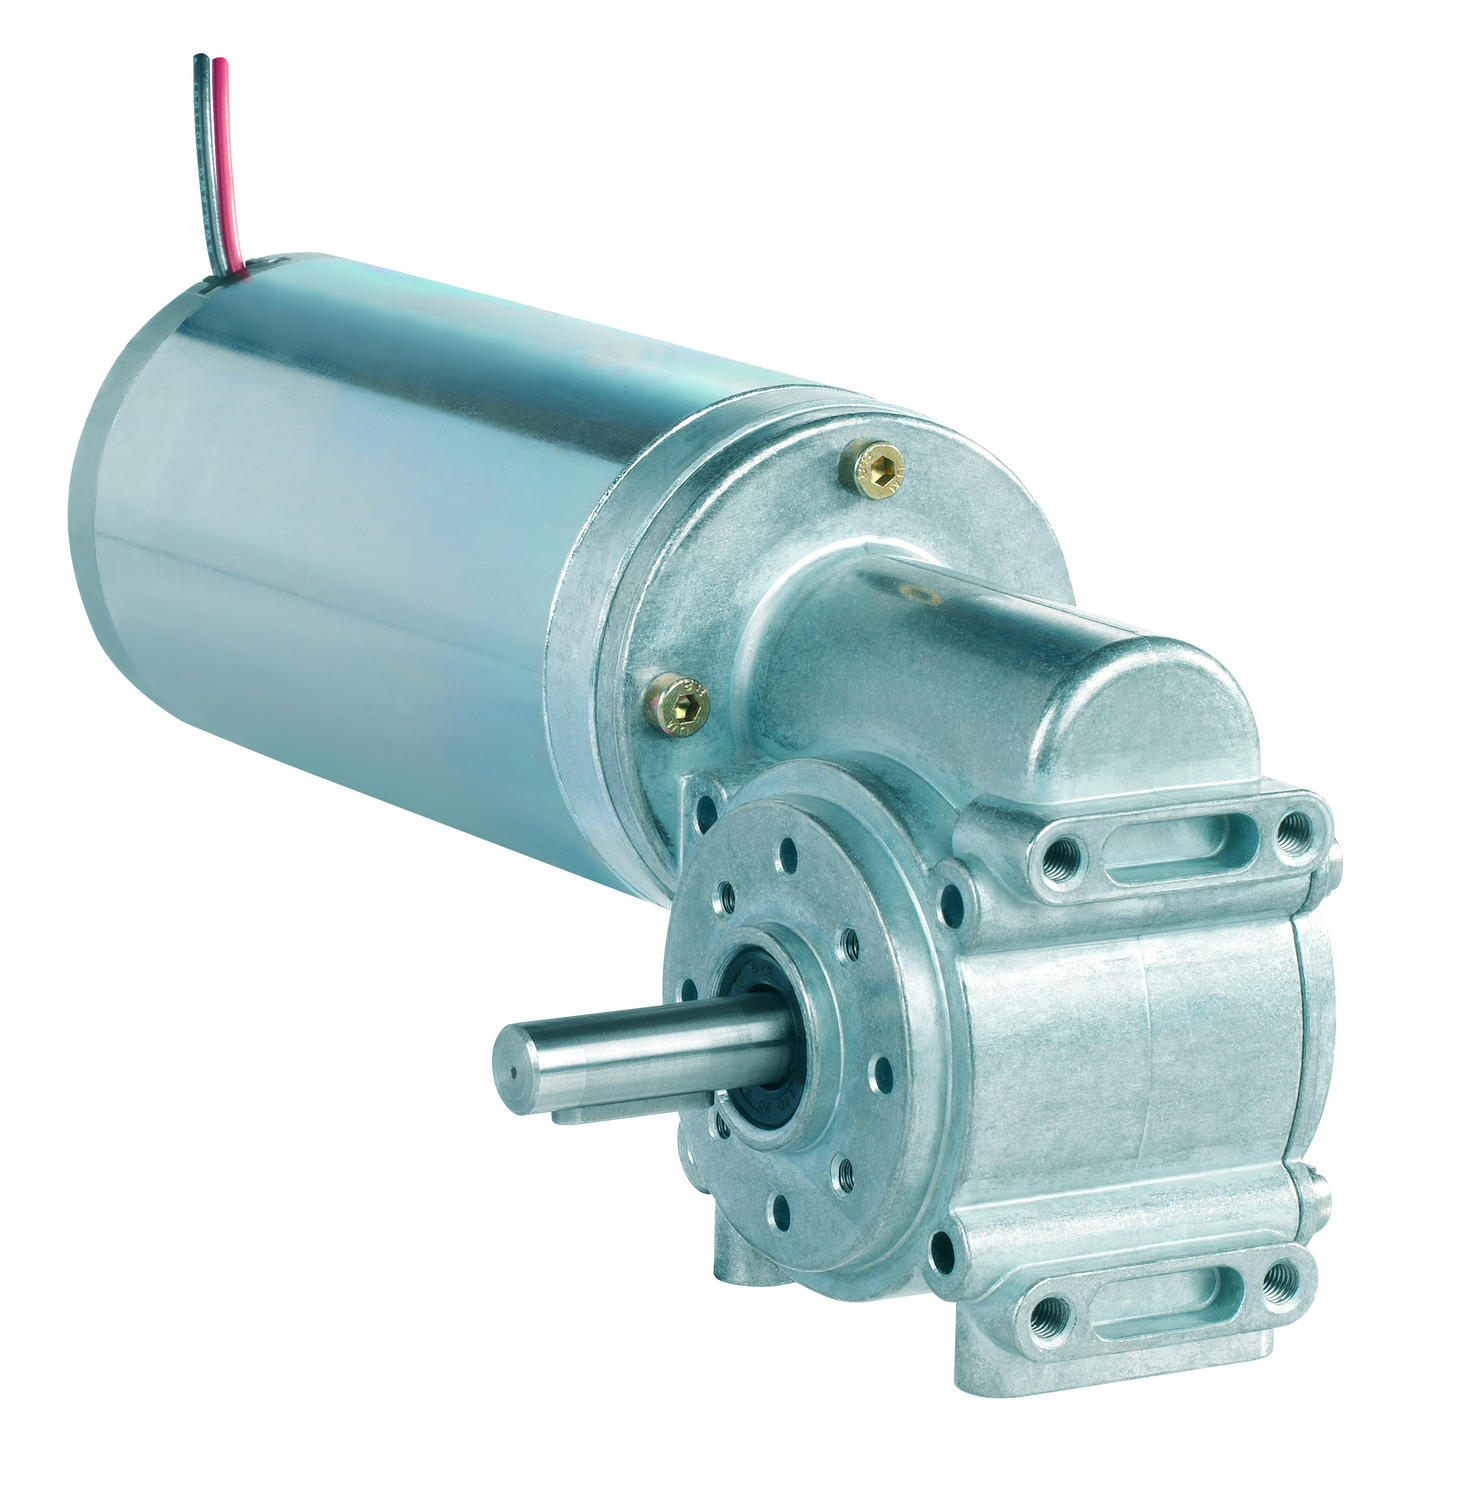 80891xxx DC motor with worm gearbox - Industrial DC Series